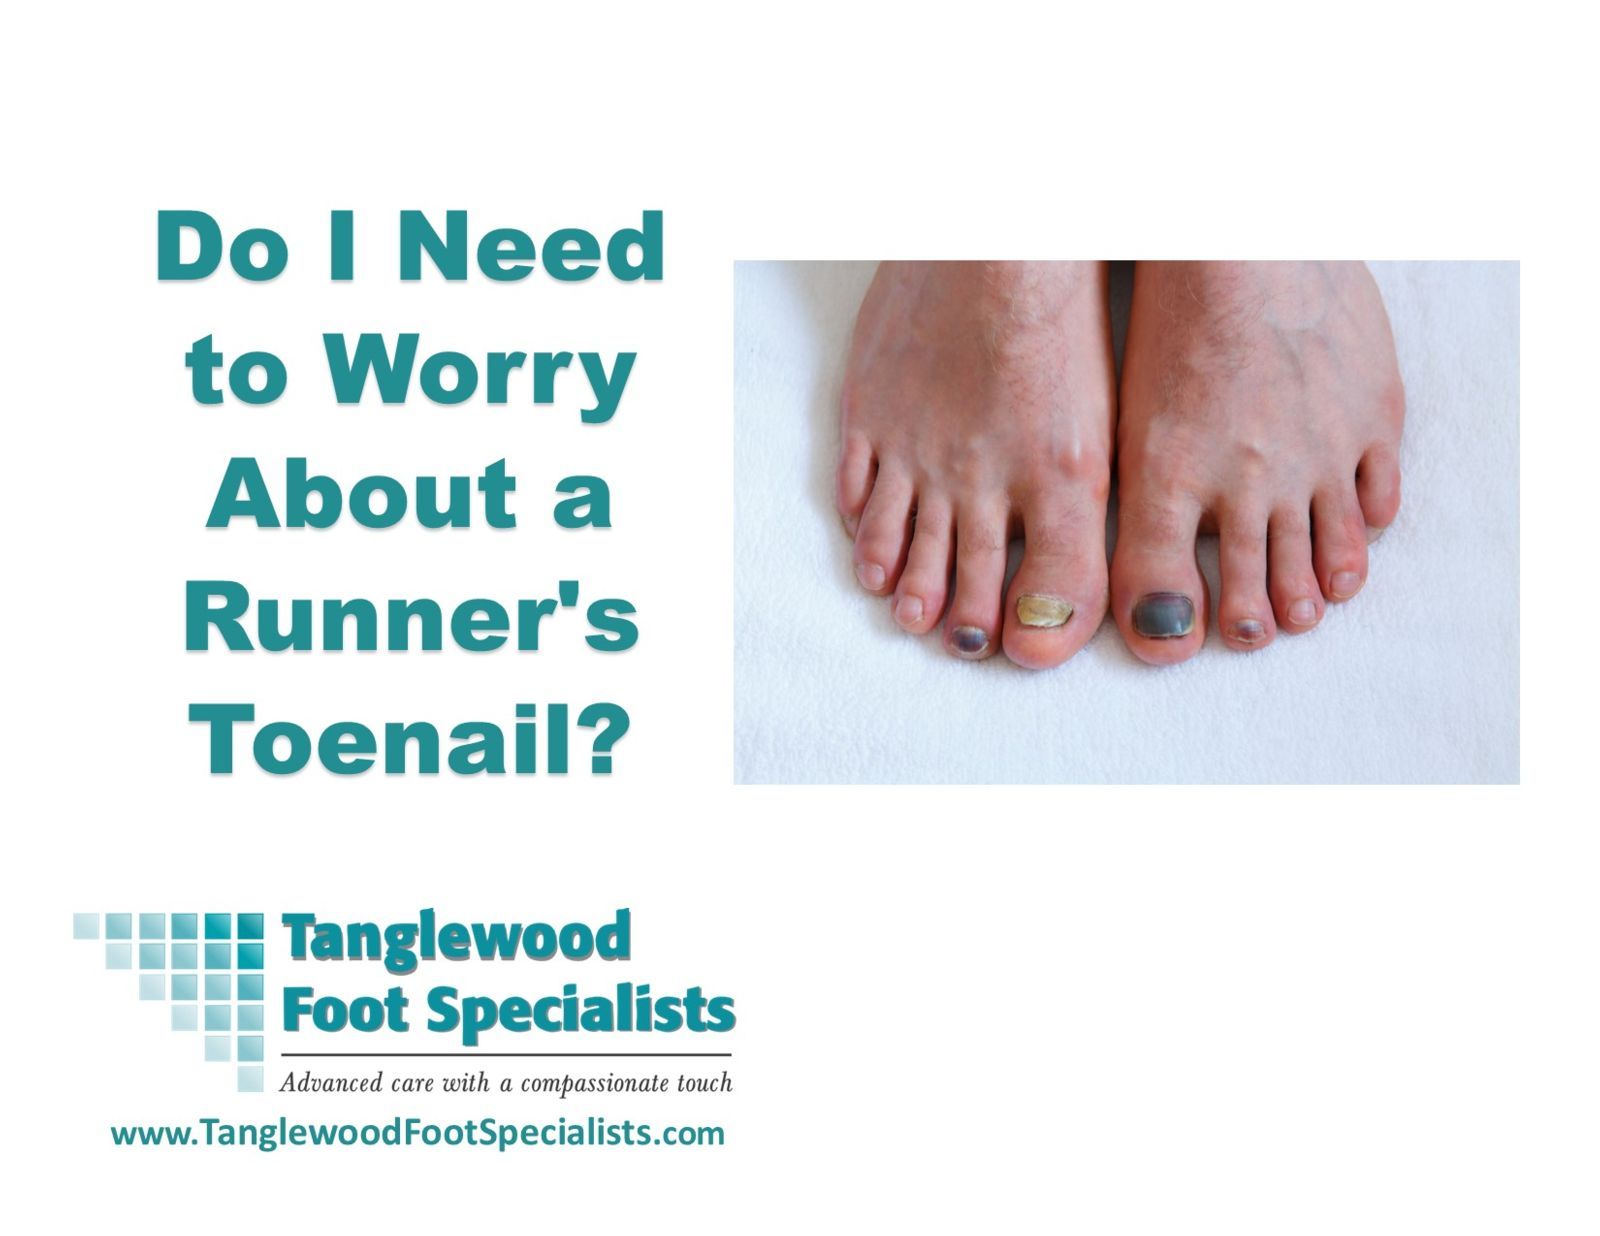 Do I Need to Worry About a Runner's Toenail?